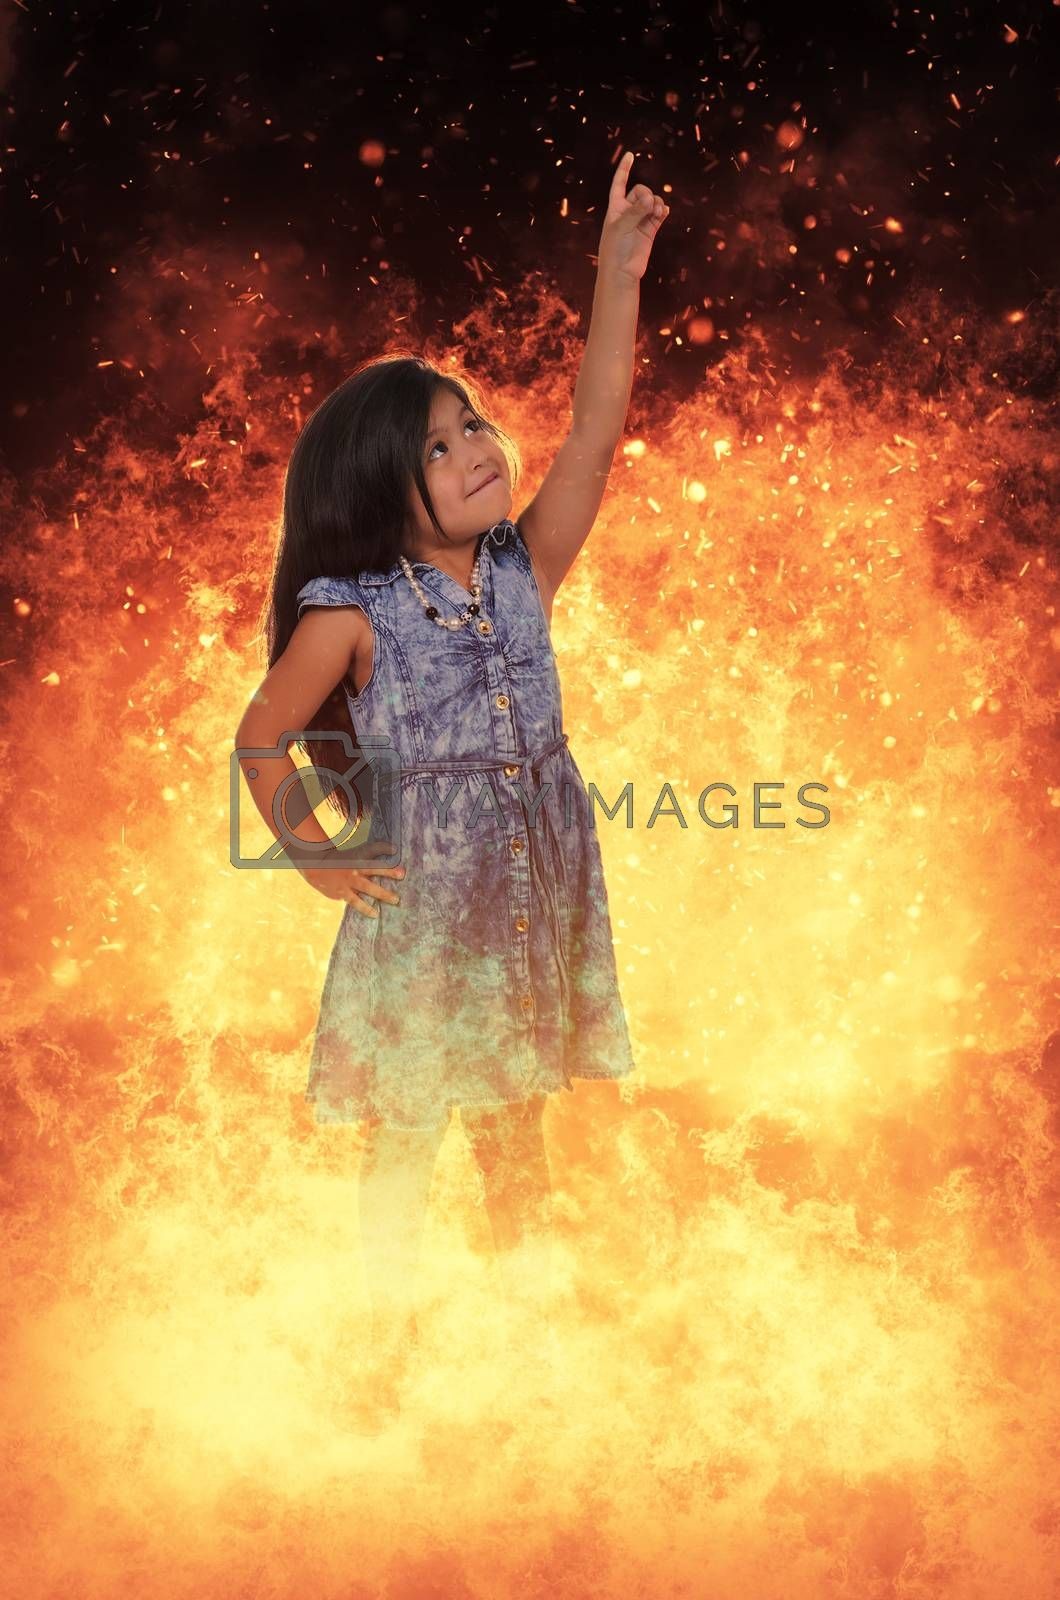 Beautiful little girl standing in the midst of a fire